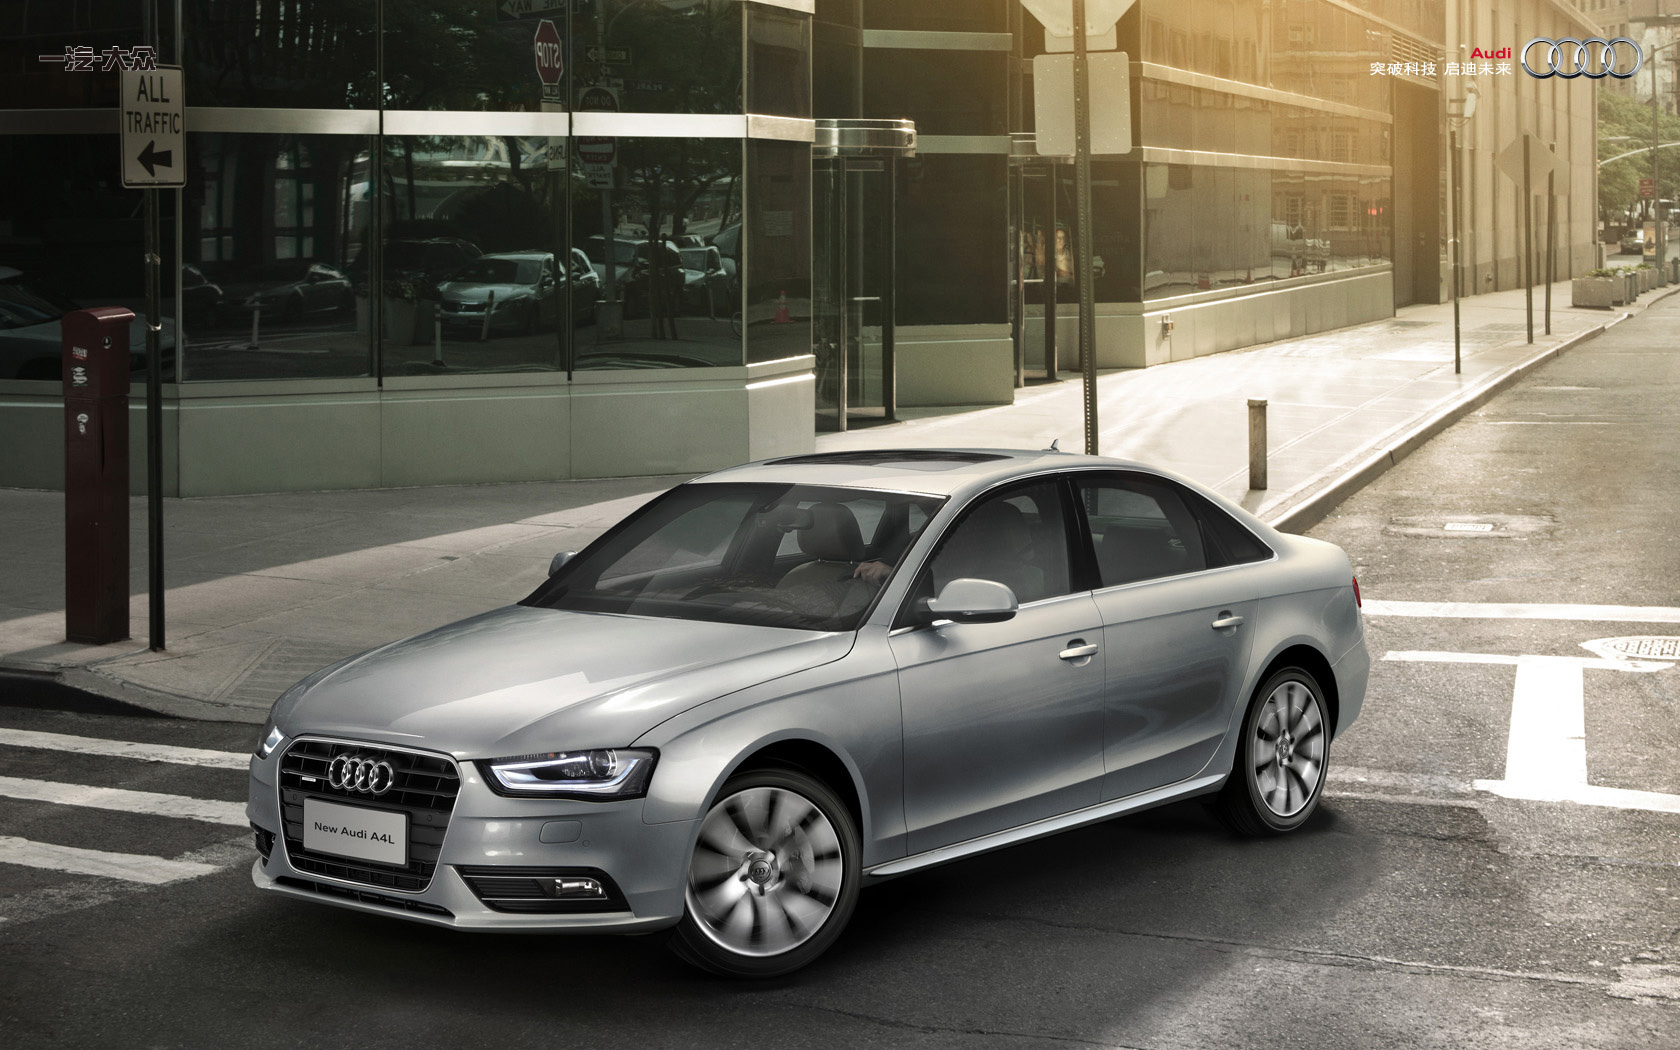 2016 Audi Q5 >> AUDI A4L specs & photos - 2012, 2013, 2014, 2015, 2016 - autoevolution